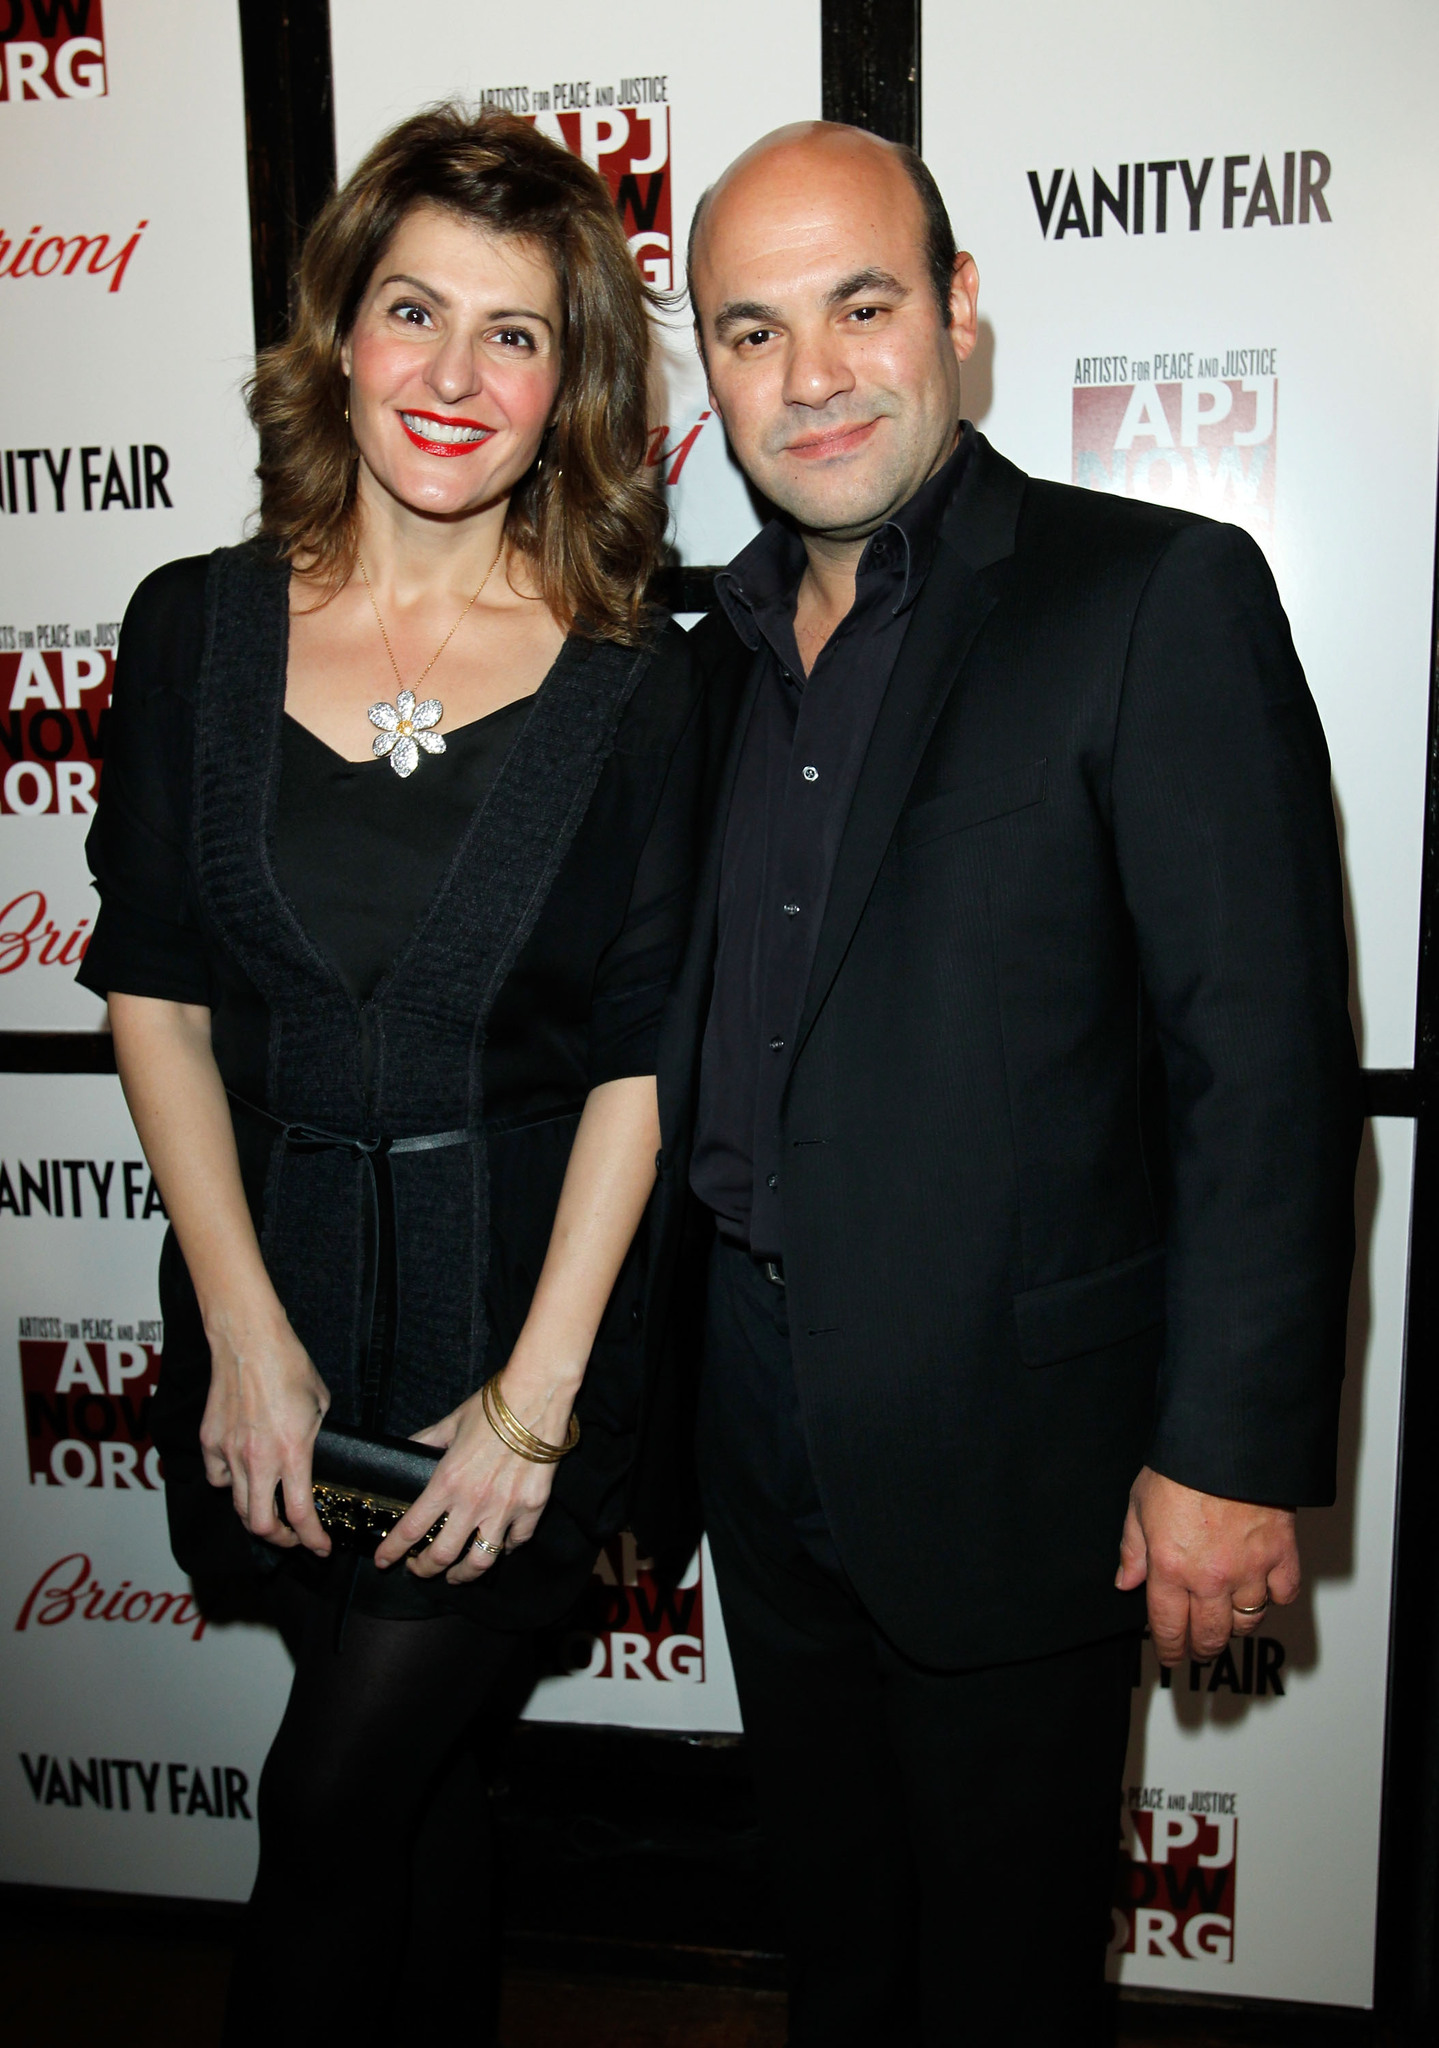 ian gomez moviesian gomez instagram, ian gomez, ian gomez and nia vardalos, ian gomez alanis morissette, ian gomez height, ian gomez net worth, ian gomez imdb, ian gomez daughter, ian gomez and nia vardalos daughter, ian gomez and nia vardalos wedding, nia vardalos and ian gomez, ian gomez attorney, ian gomez movies, ian gomez weight loss, ian gomez shirtless, ian gomez ethnicity, ian gomez wife nia vardalos